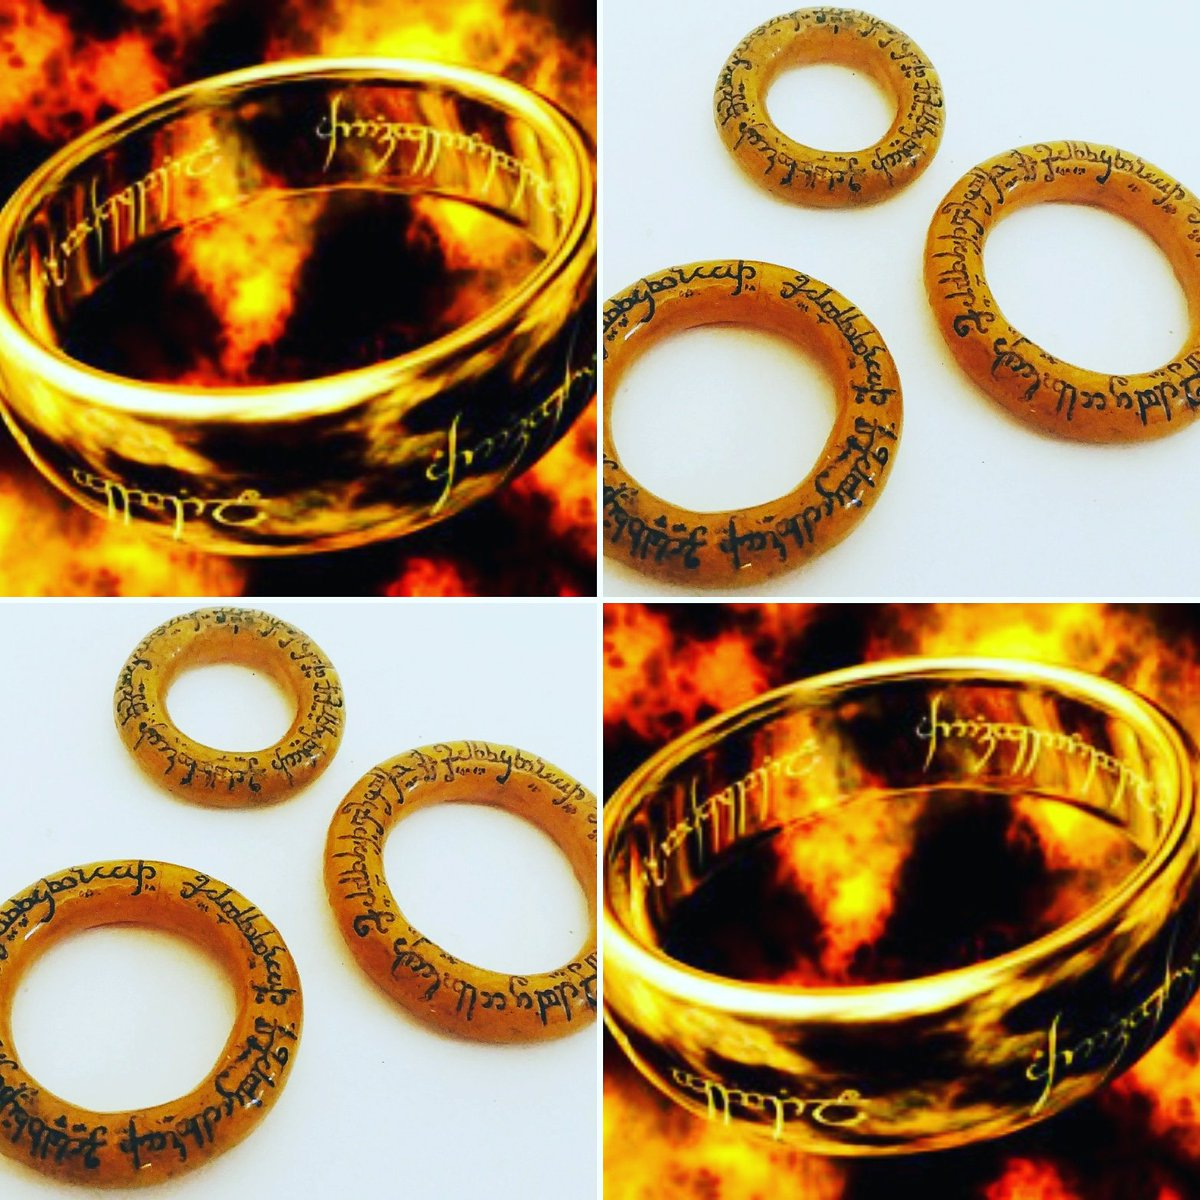 One dick ring to rule them all